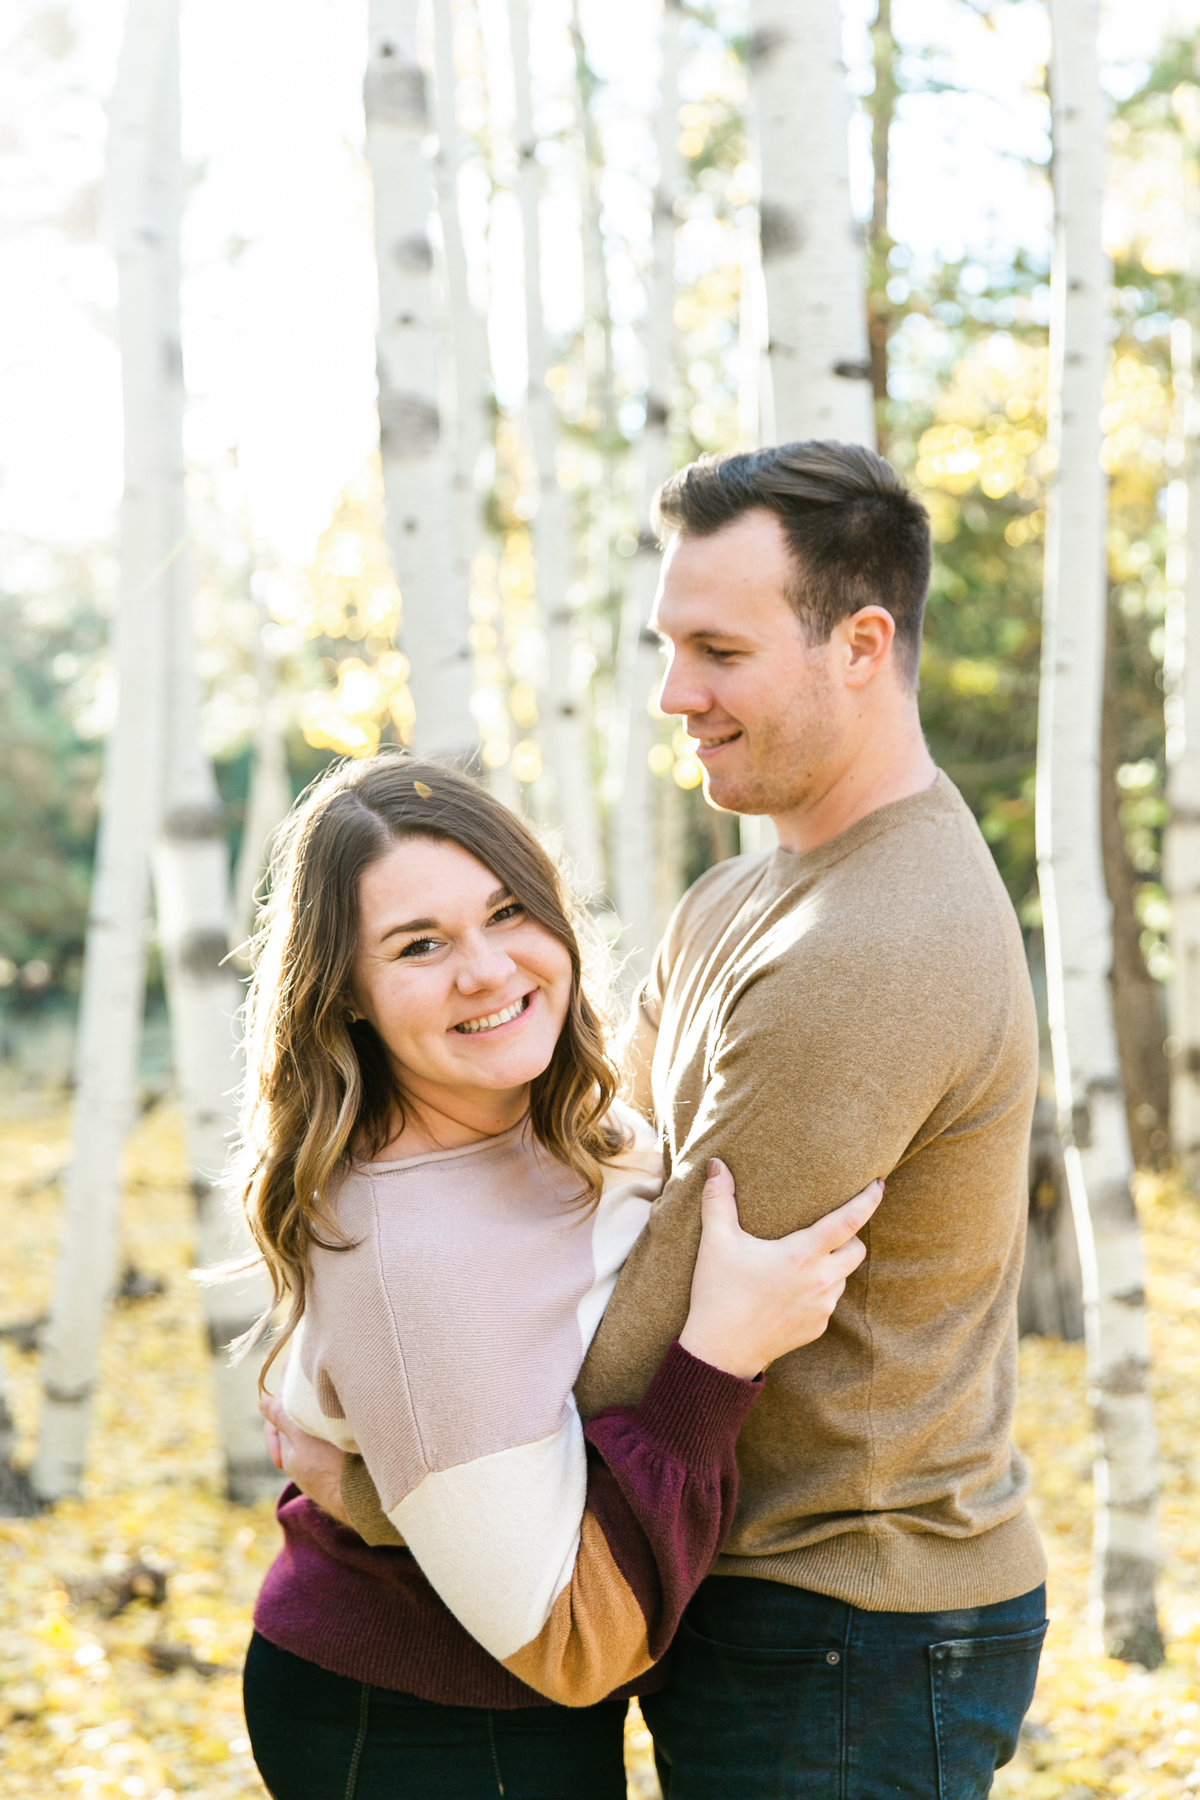 Karlie Colleen Photography - Flagstaff Arizona Engagement Photographer - Britt & Josh -100